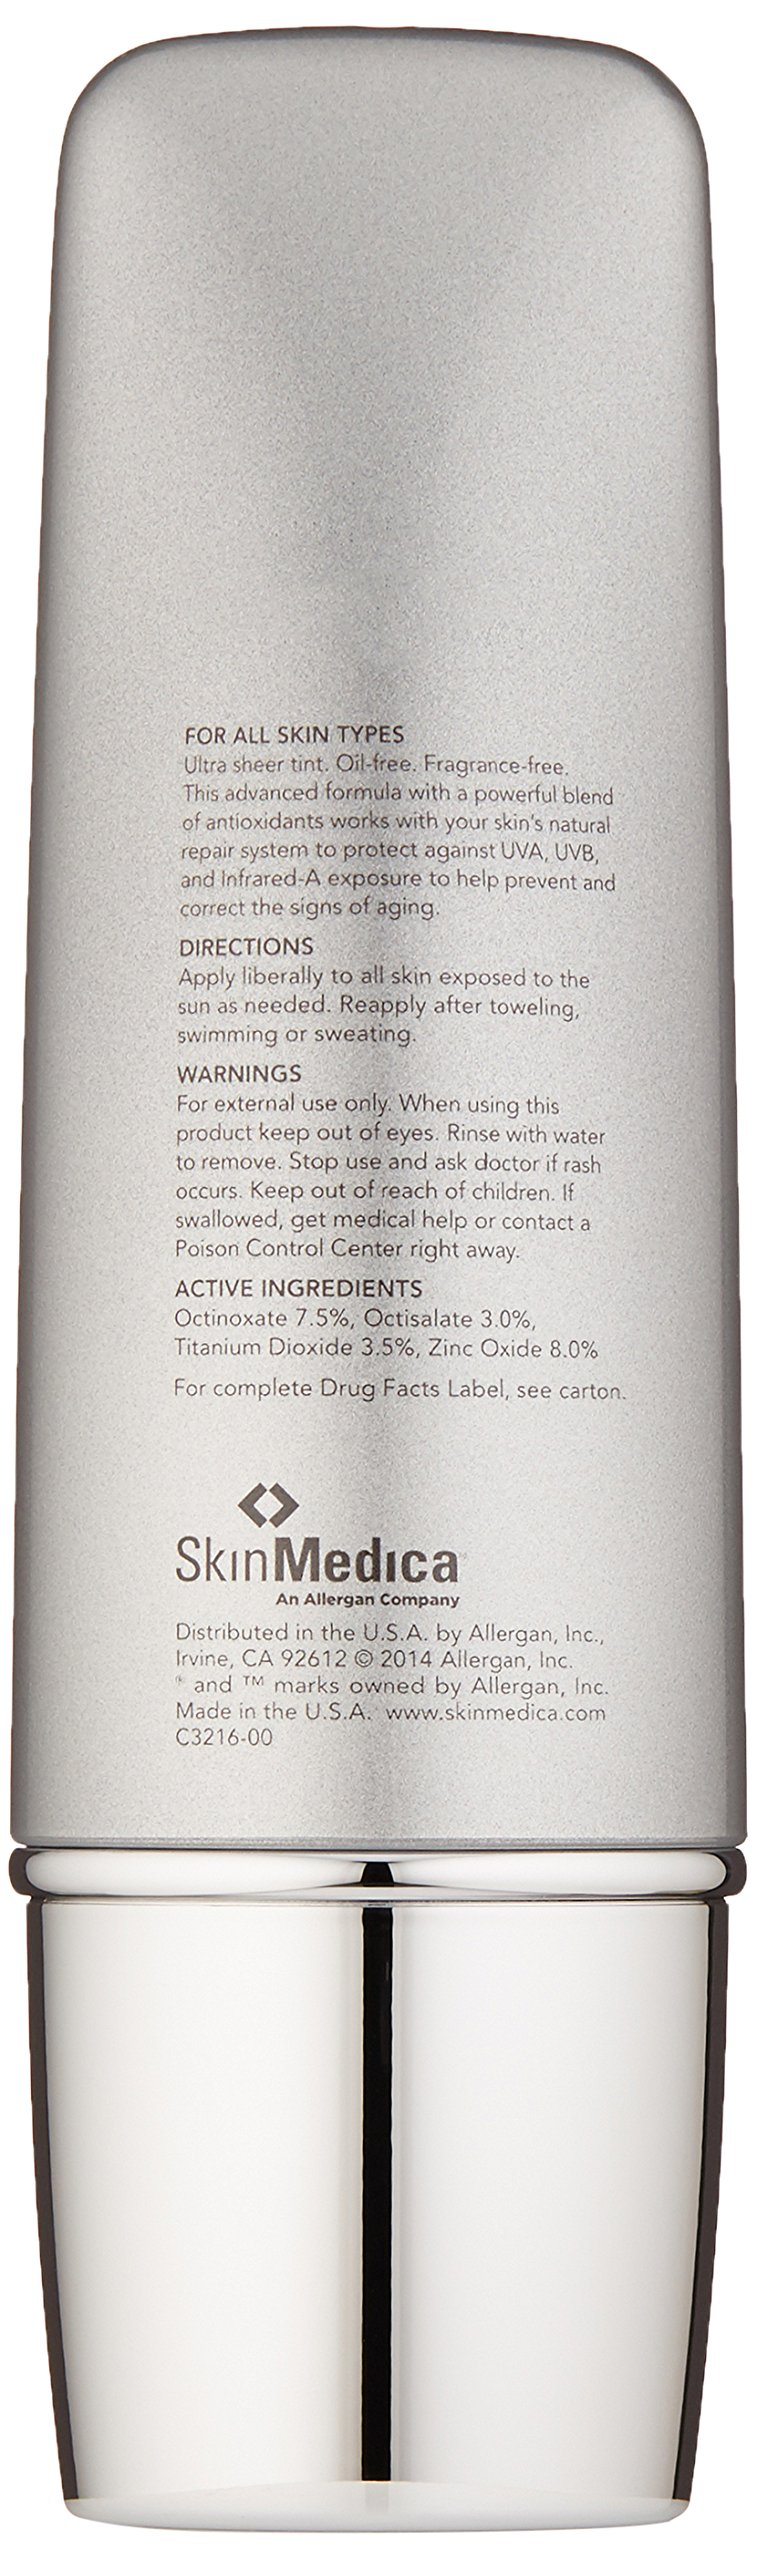 SkinMedica Total Defense Plus Repair SPF 34 Sunscreen Tinted, 2.3 oz. by SkinMedica (Image #5)